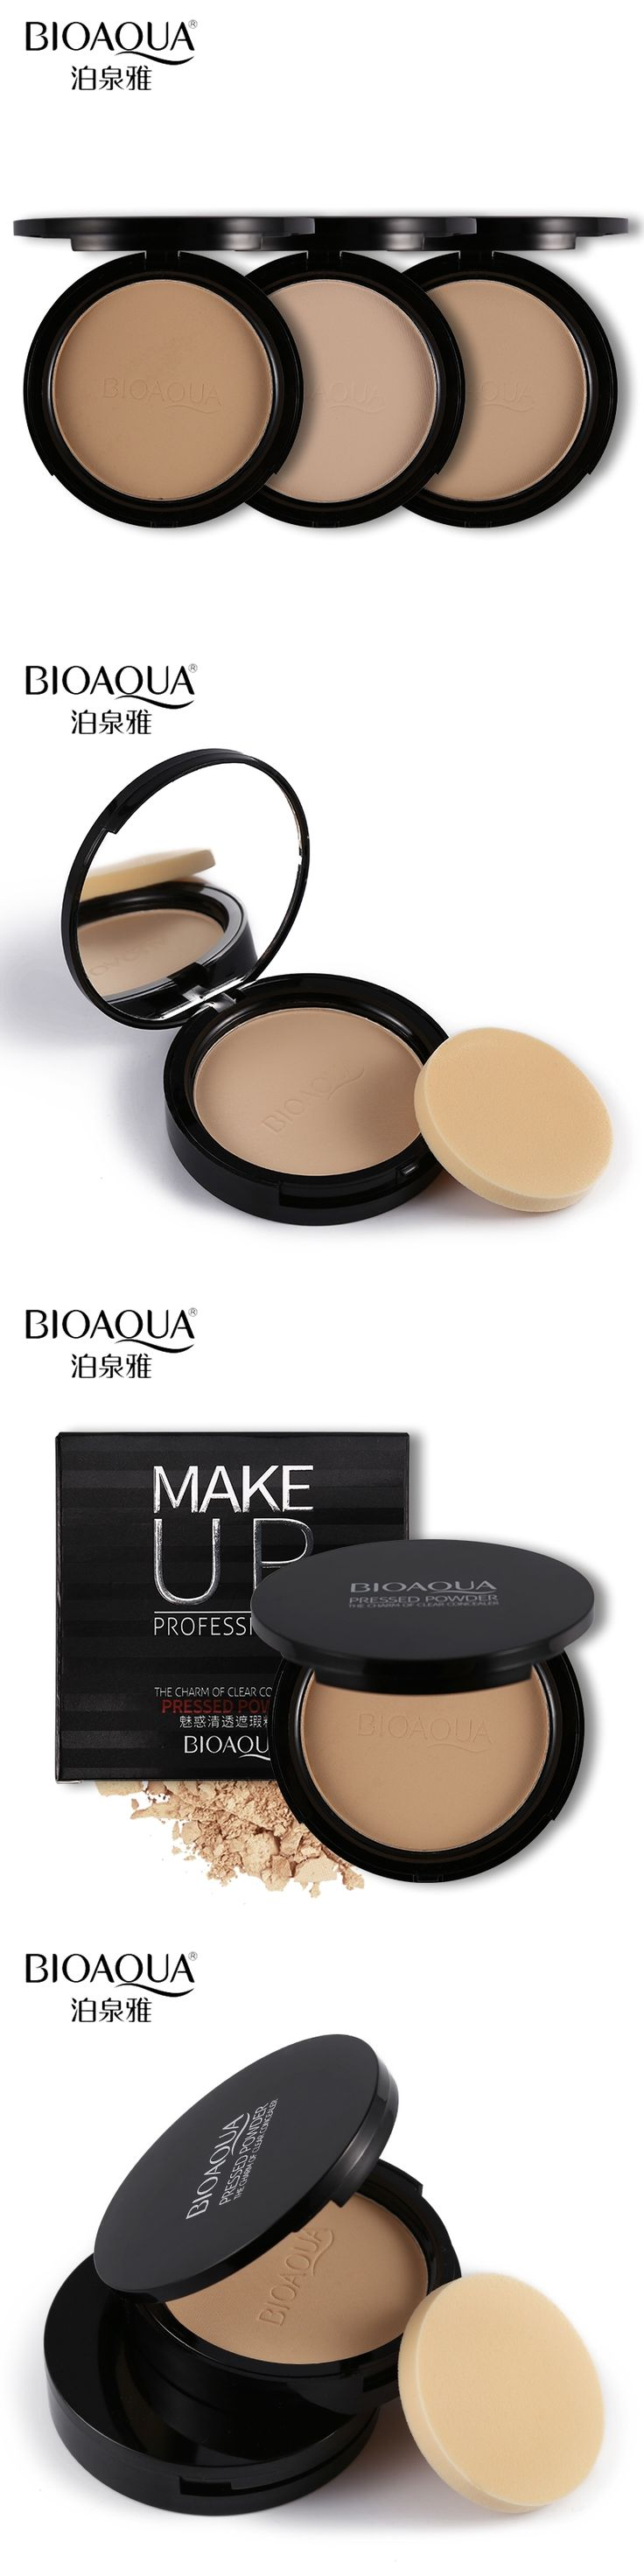 O.TWO.ONew Face Make Up Cosmetic Tools Makeup Foundation BB Cream Silica Gel Puff Transparent Jelly Powder Puff